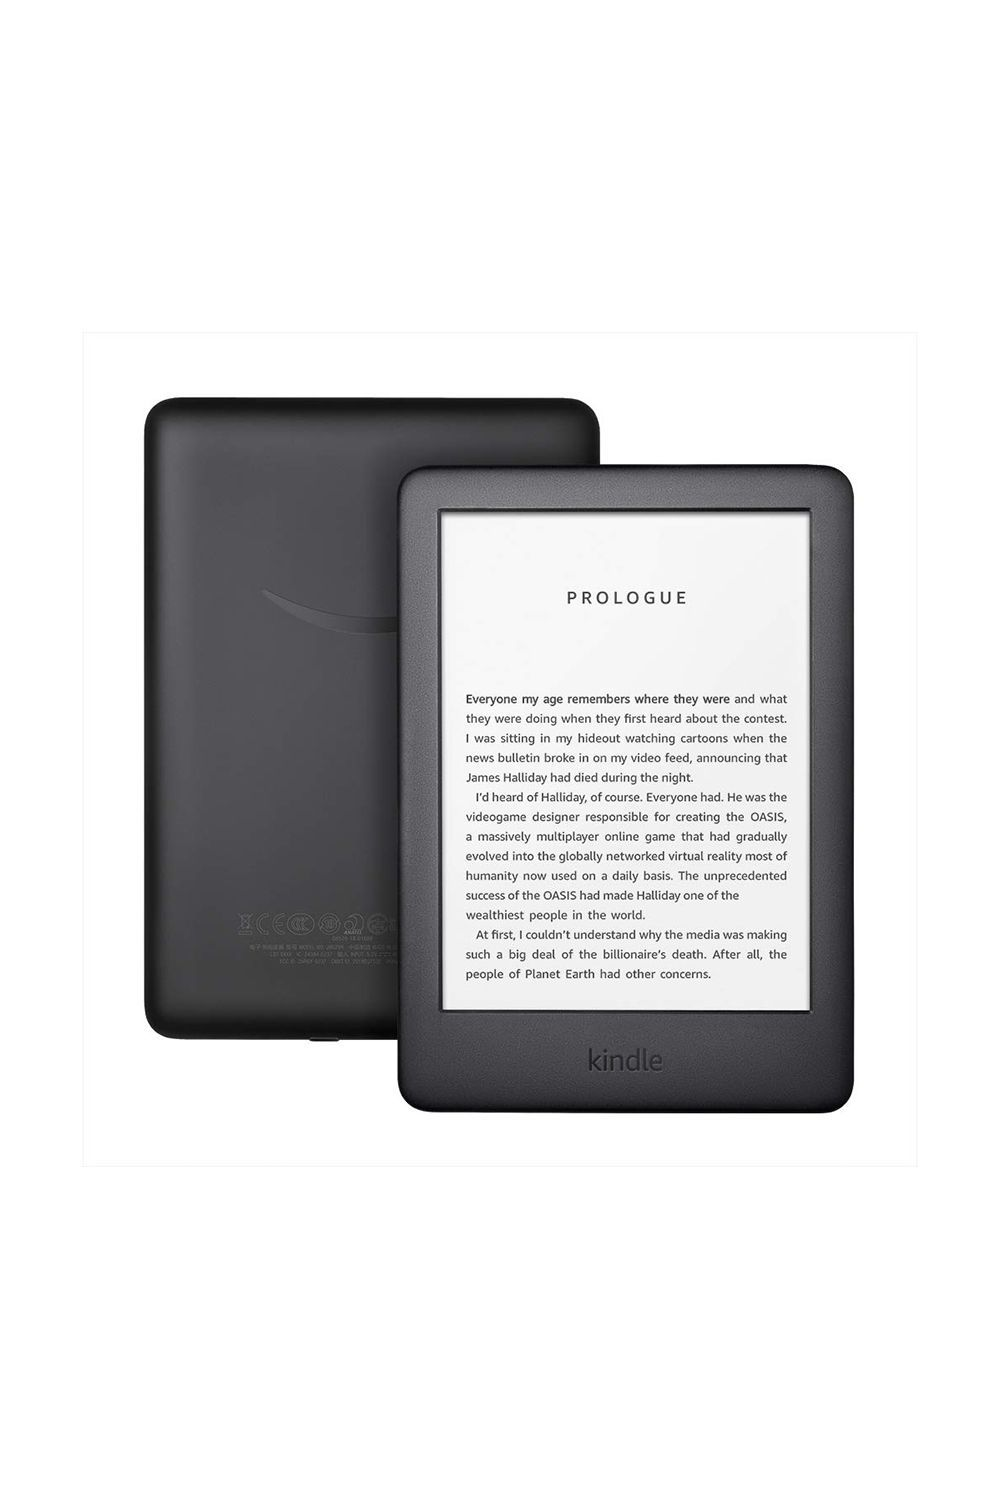 The New Kindle Amazon $89.99 SHOP IT Amazon released its brand new Kindle, which includes a built-in front light. It's perfect for when dad goes to sleep early and mom doesn't have to hear him complain about turning off the lights.